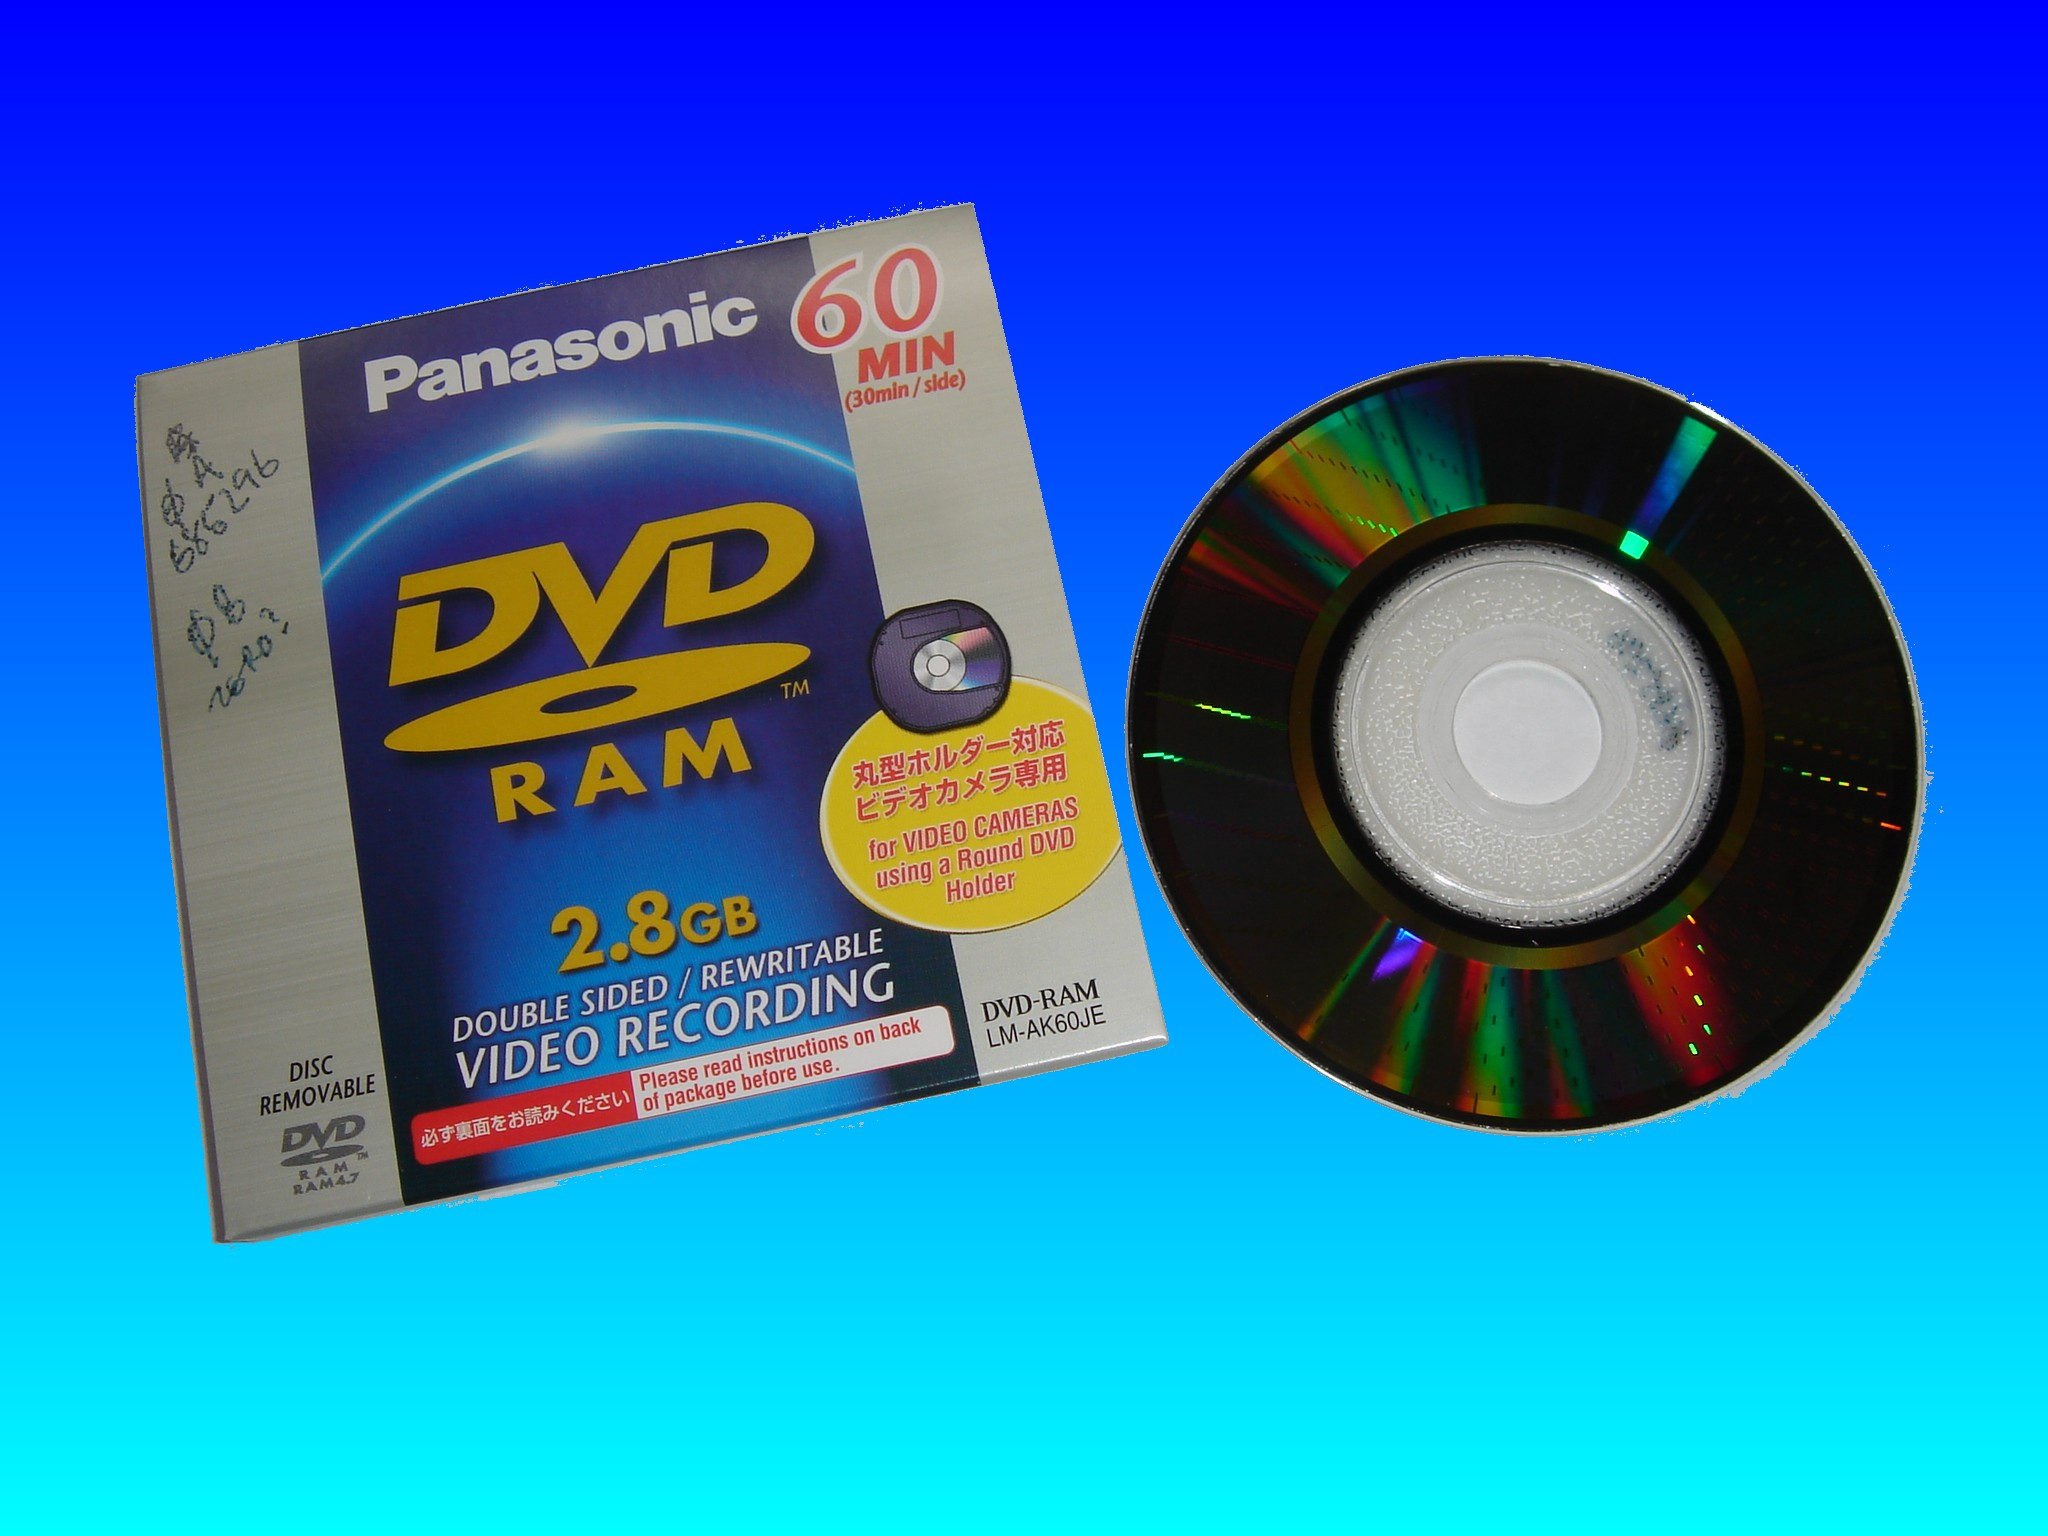 A Panasonic DVD-RAM cartridge used in Hitachi or Panasonic Video Cameras. The camocrder would record video directly to the disc. The disk surface where video was burnt can easily be seen as a darker area extending from the centre to the outer edge.